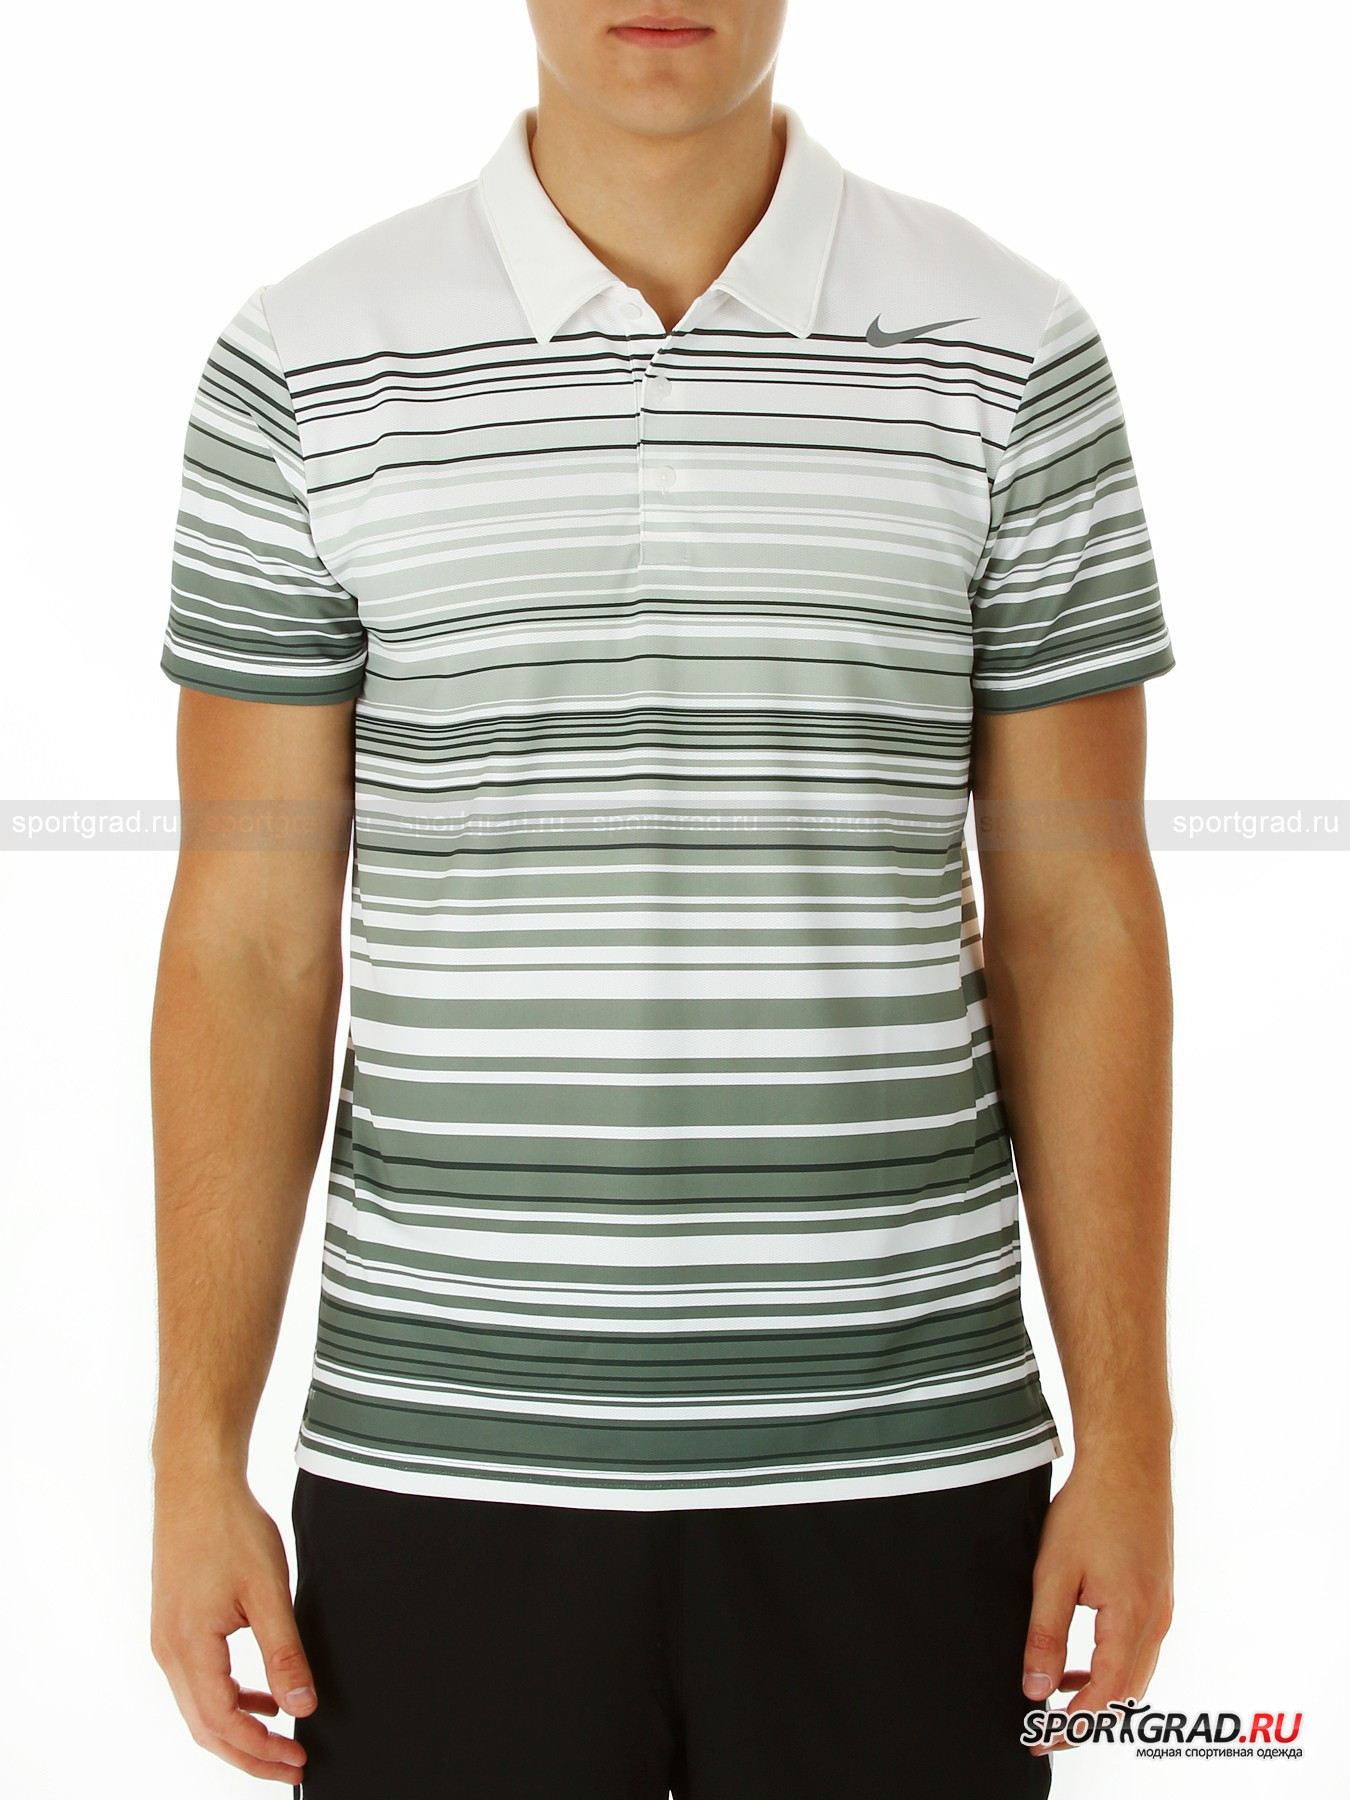 Поло мужское RALLY SPHERE STRIPE POLO NIKE для игры в теннис